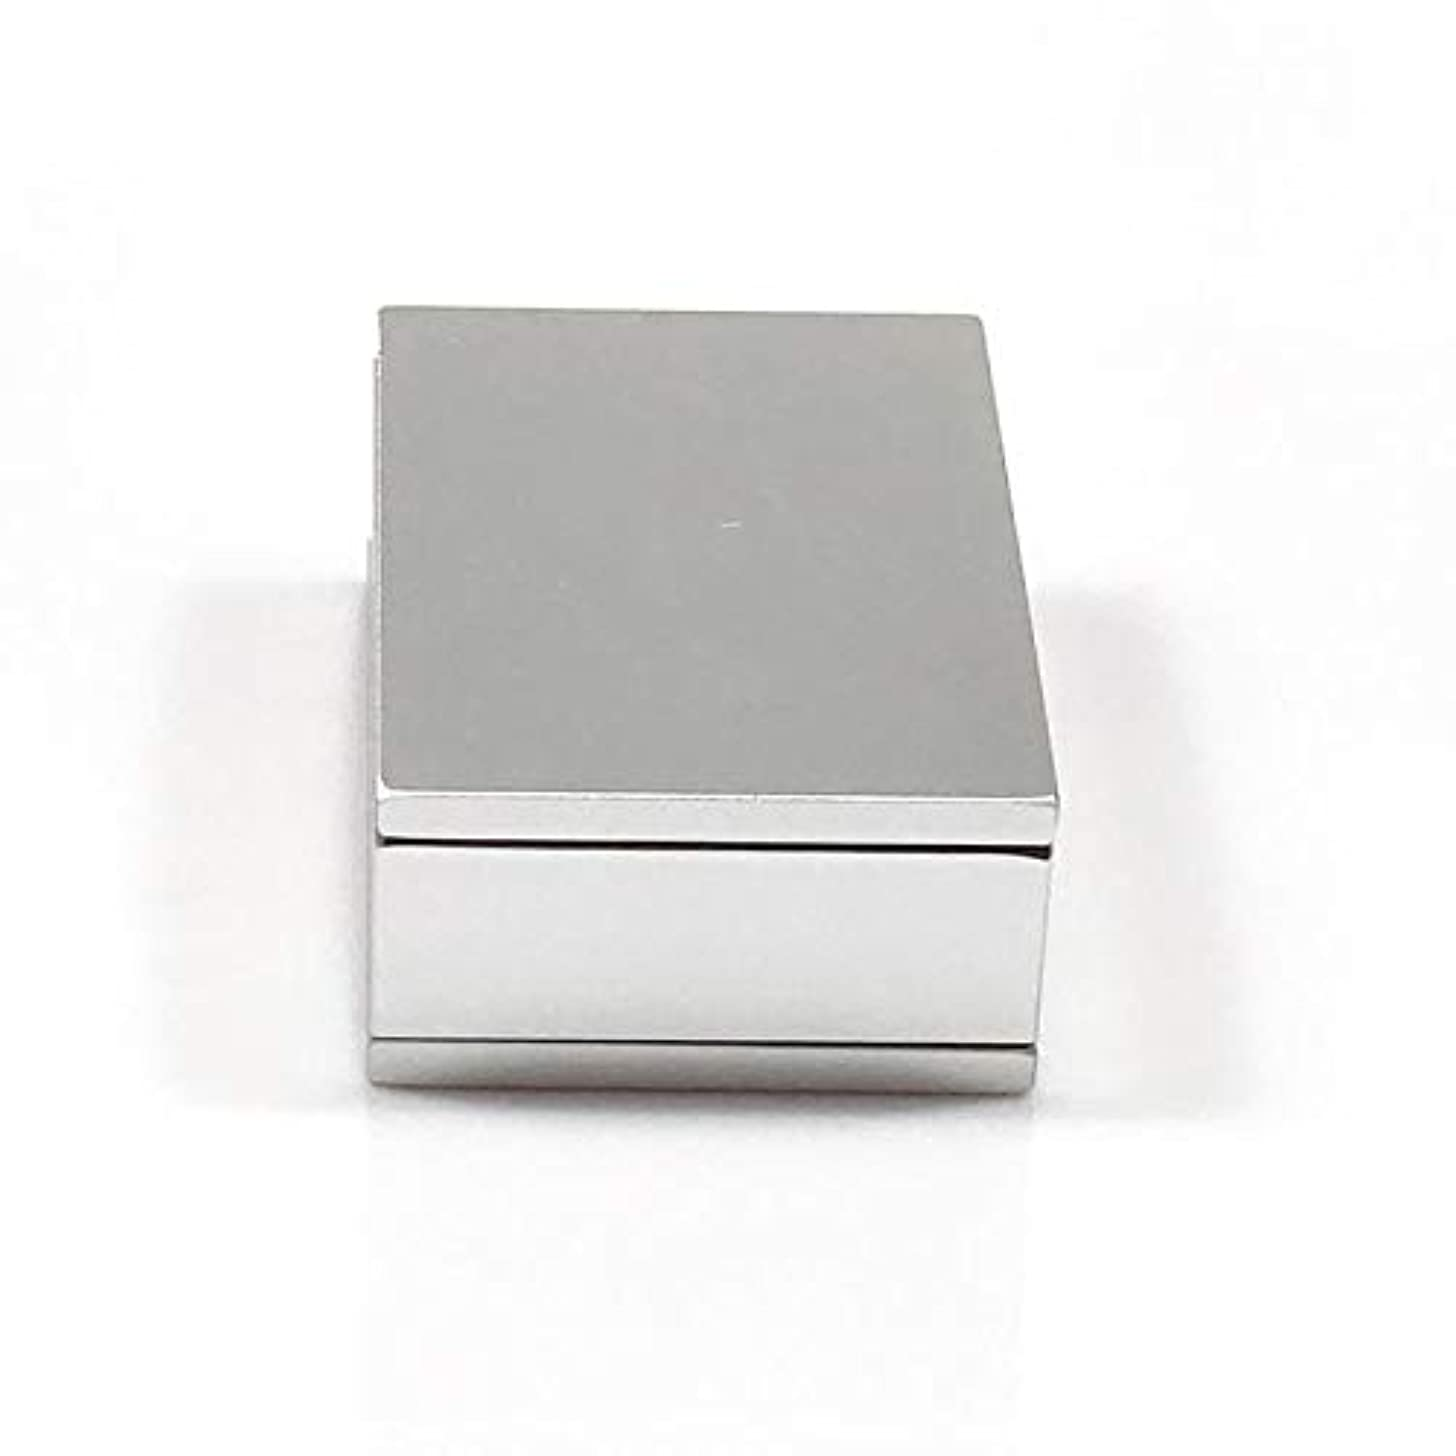 Holyangtech pre Press Mold-hot Selling Rosin Pre Press Mold for DIY Solventless Extraction & Pressing Mold (3''x5'')